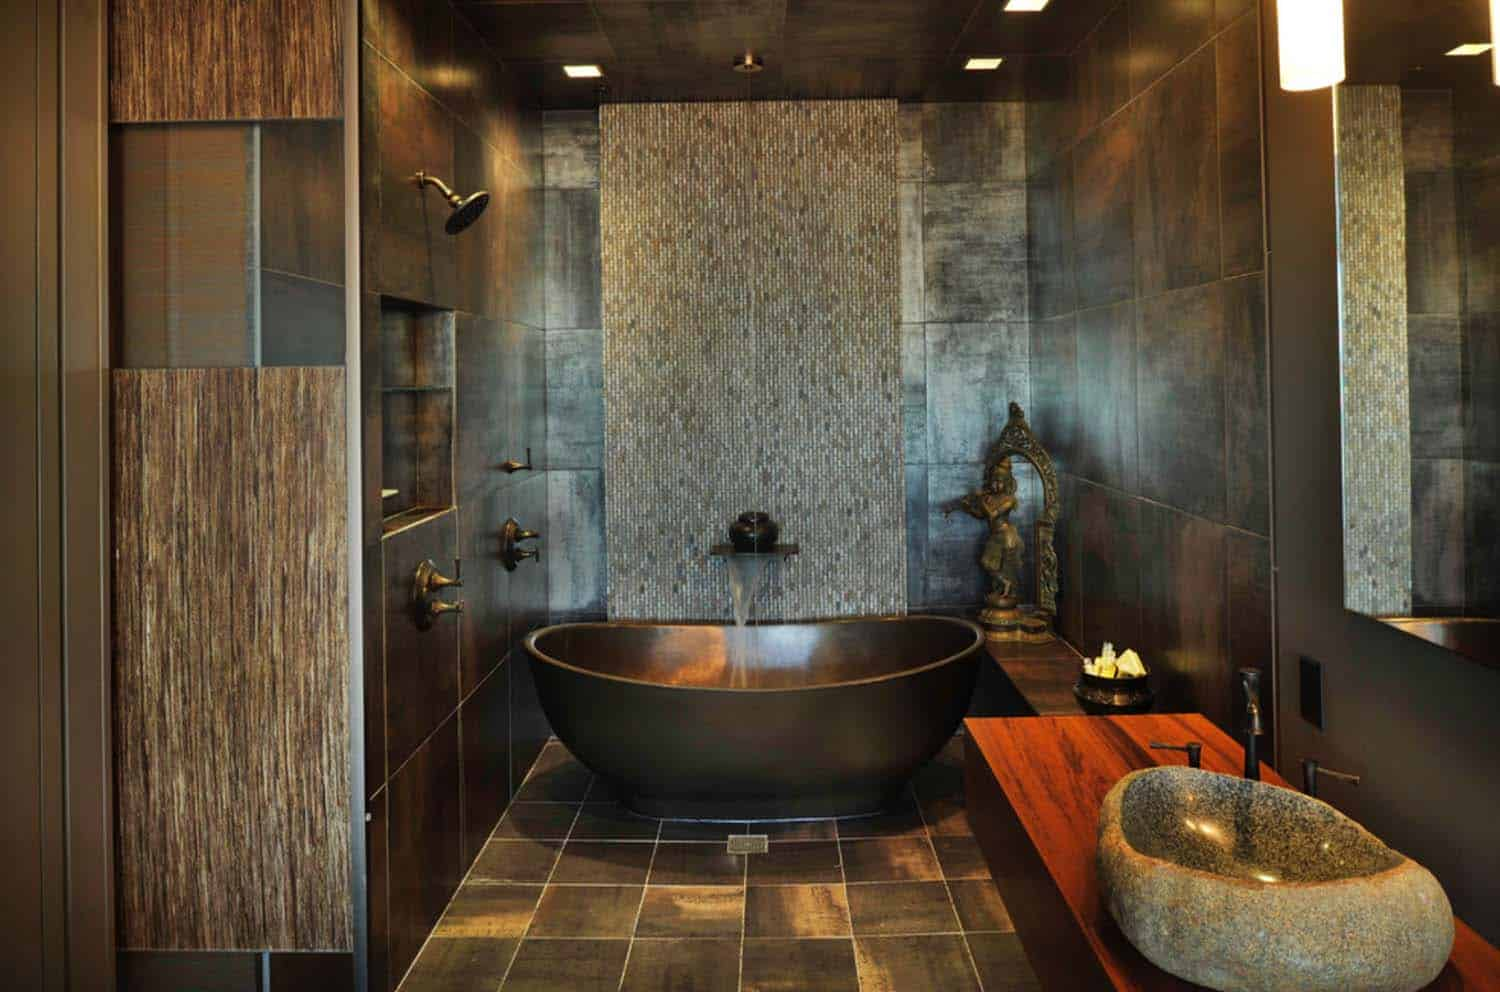 Freestanding-Tubs-Bathroom-Ideas-12-1 Kindesign